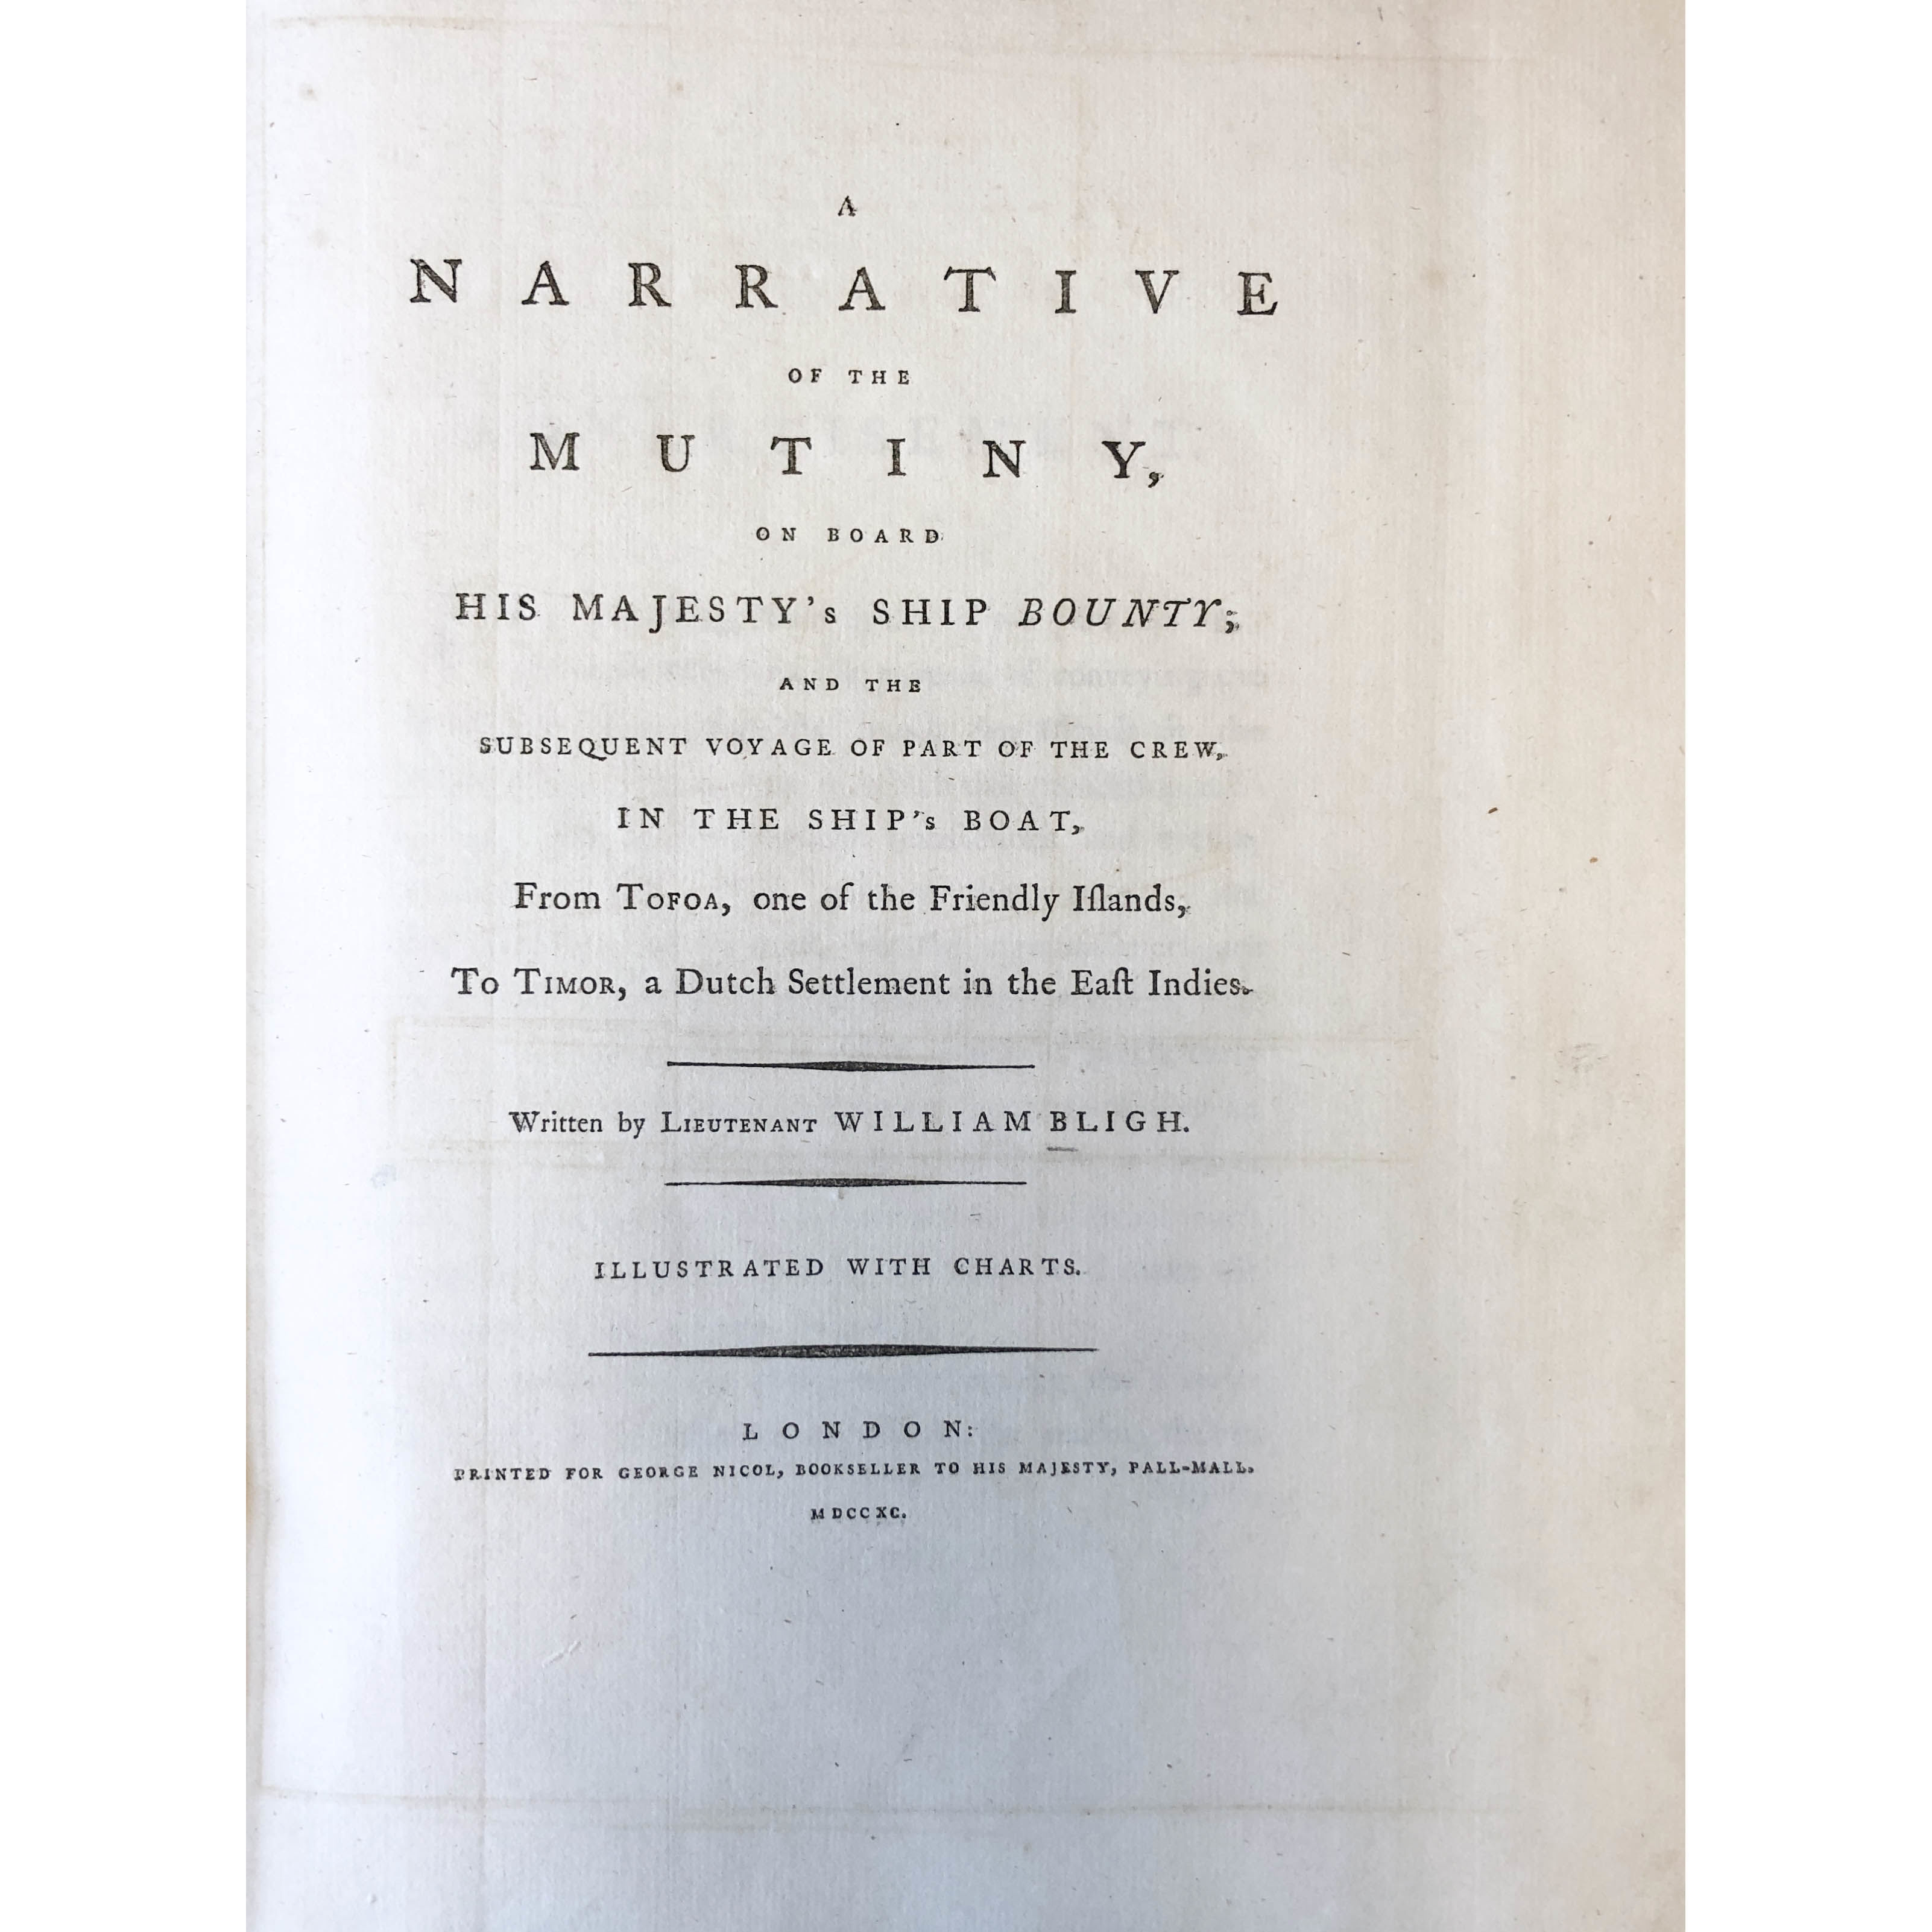 A Narrative of the Mutiny on board his majesty's ship Bounty; and the subsequent voyage of part of the crew, in the ship's boat, from Tofoa, one of the Friendly islands, to Timor, a Dutch settlement in the East Indies. (photo 1)